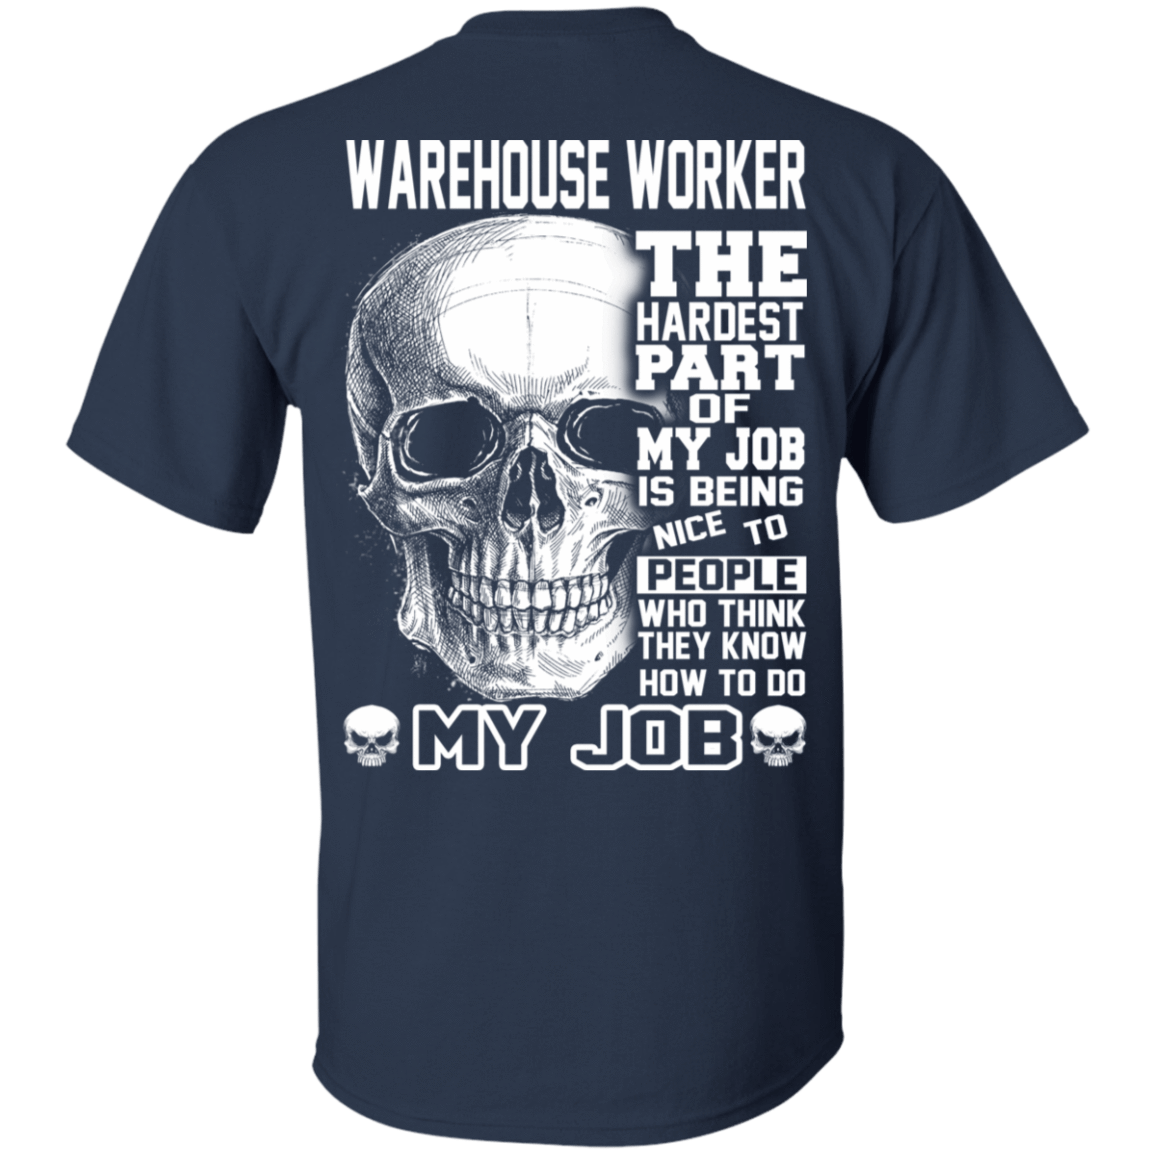 Warehouse Worker The Hardest Part Of My Job 22-111-71609199-250 - Tee Ript